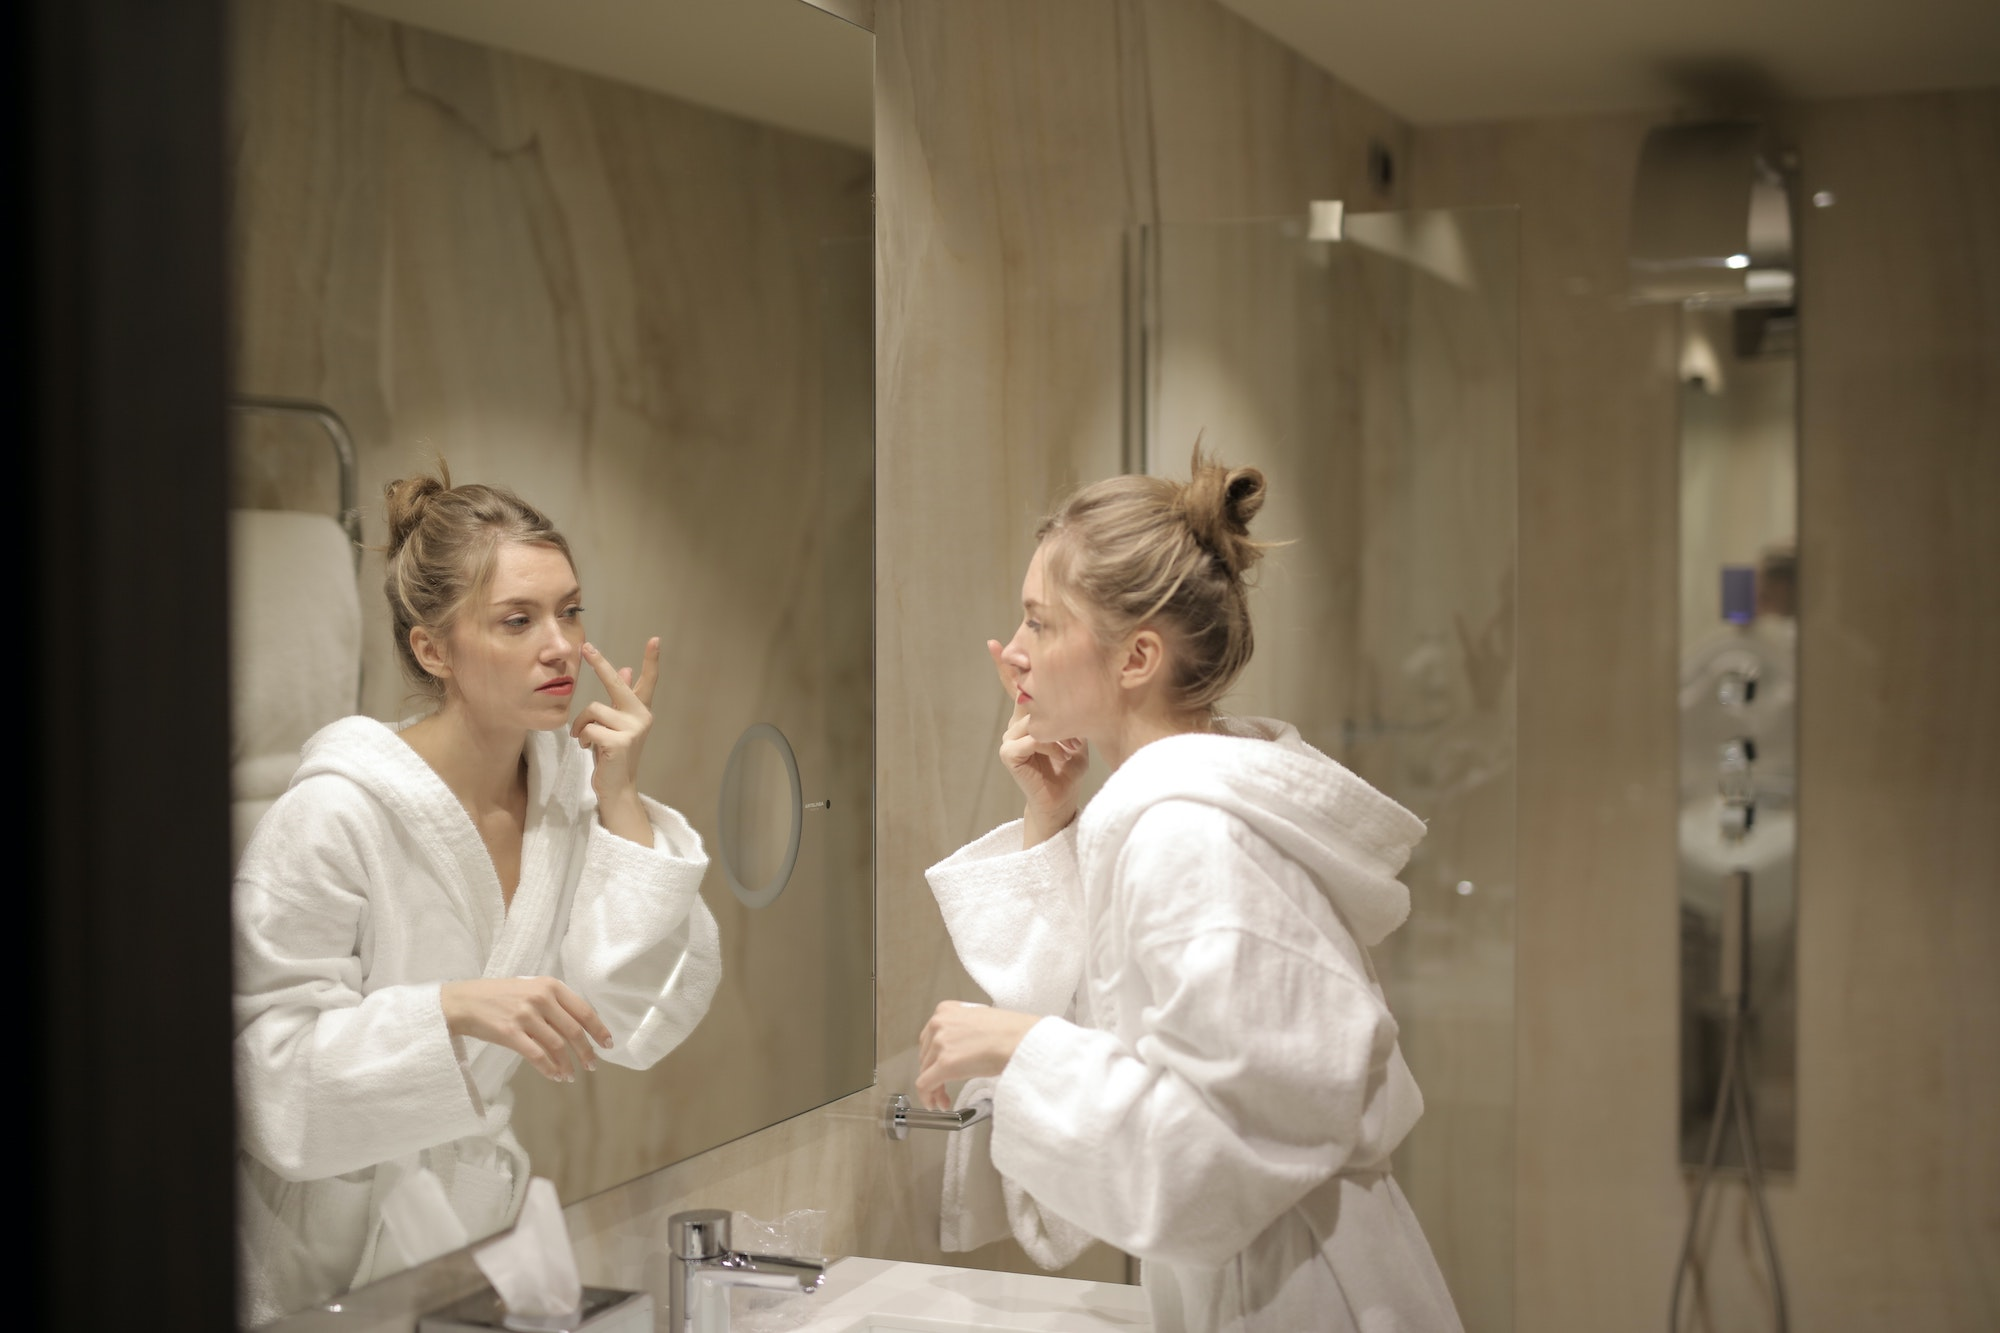 self-care routine | 7 Beauty Guide Tips To Help Prepare For A Big Event - Wedding, Prom, Birthday, Gala | Beauty Blog | Elle Blonde Luxury Lifestyle Destination Blog